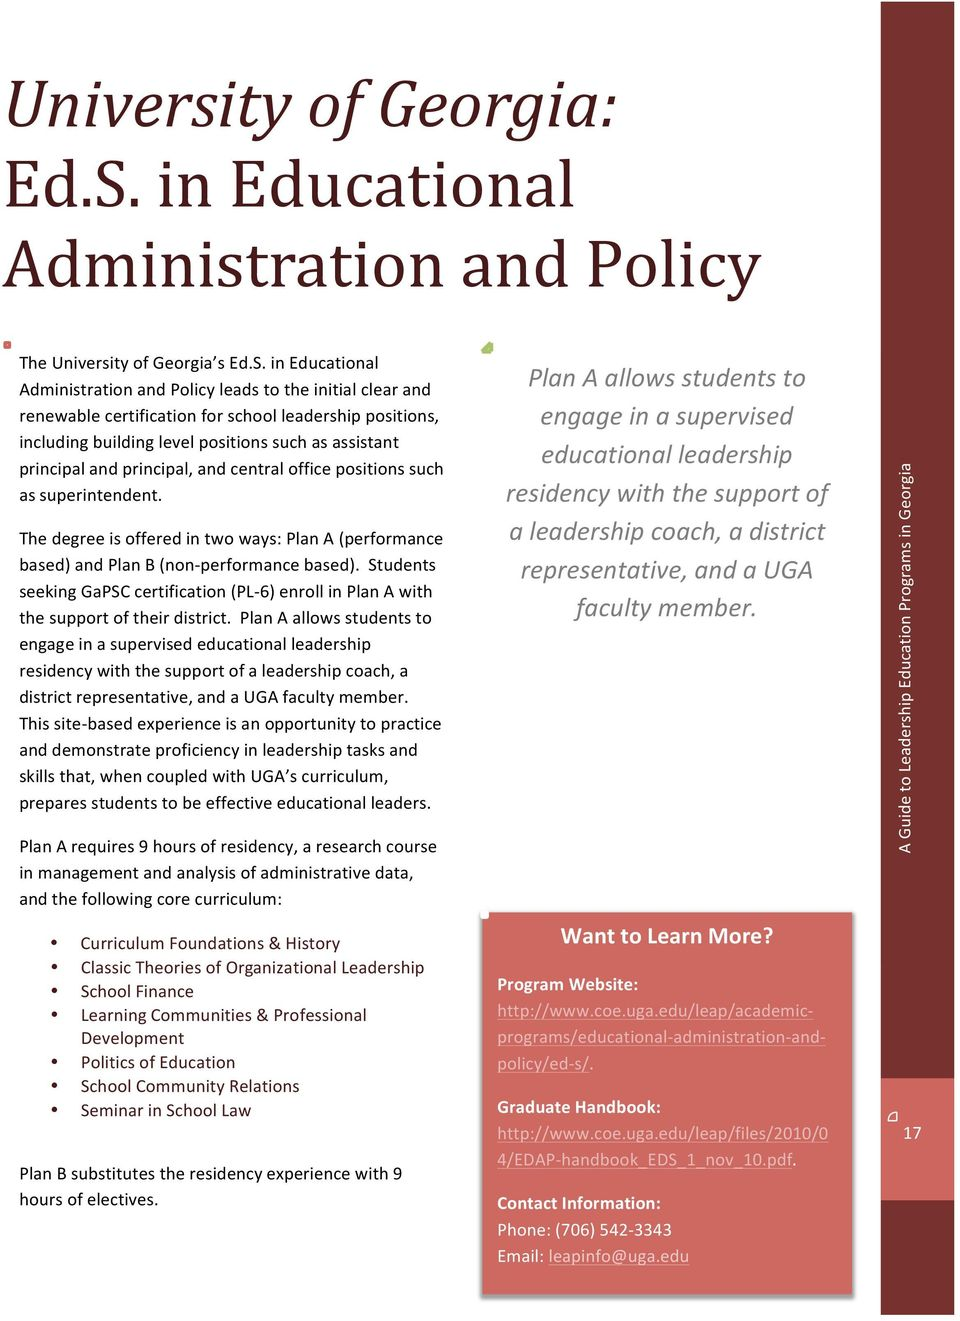 in Educational Administration and Policy leads to the initial clear and renewable certification for school leadership positions, including building level positions such as assistant principal and